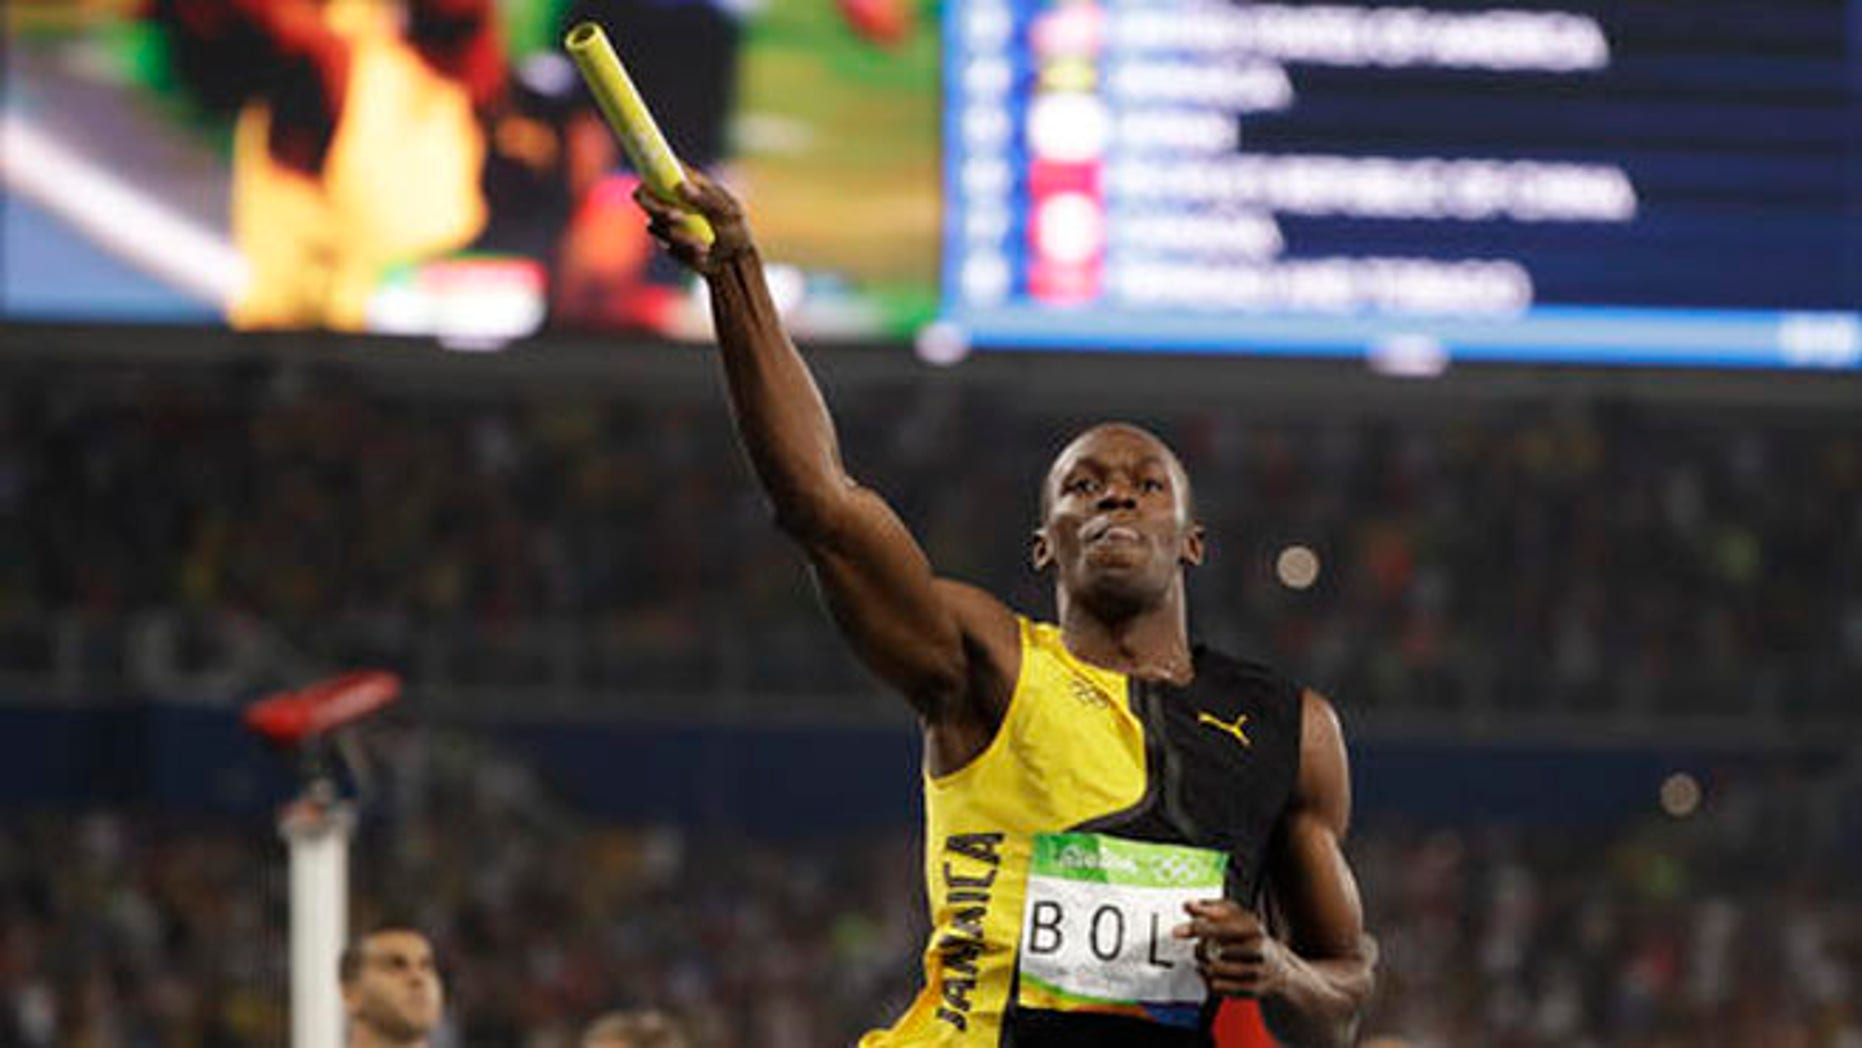 Jamaica's Usain Bolt celebrates winning the gold medal in the men's 4x100-meter relay final Friday at the 2016 Summer Olympics in Rio de Janeiro